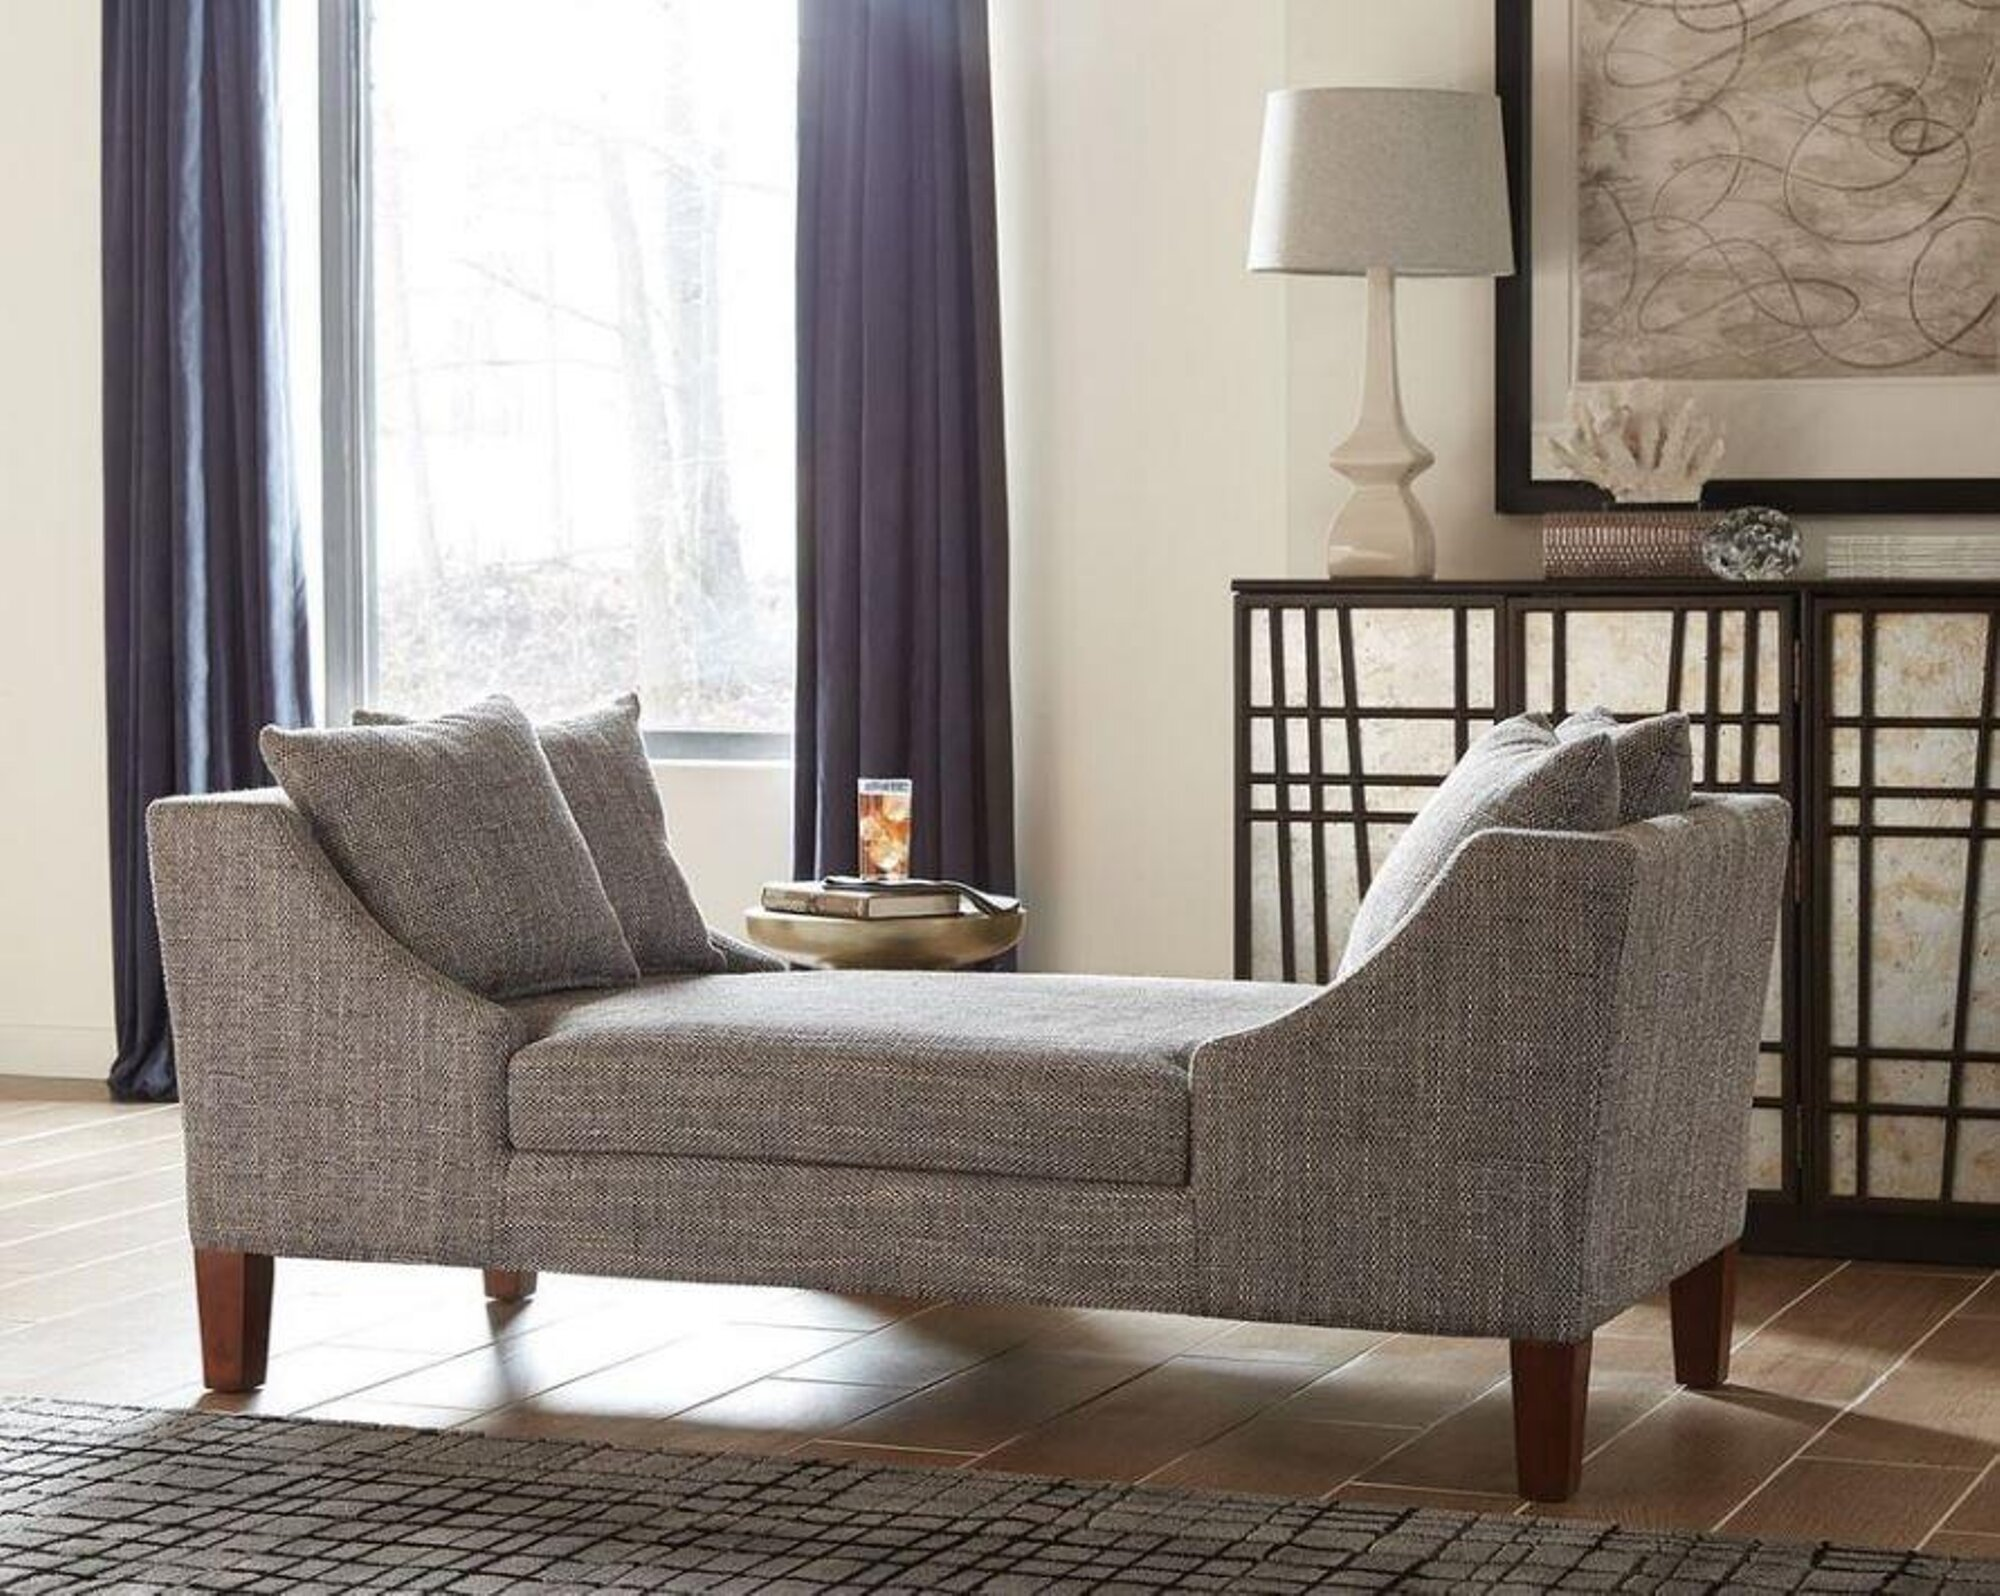 SCTL Chaise Lounge & Reviews | Wayfair